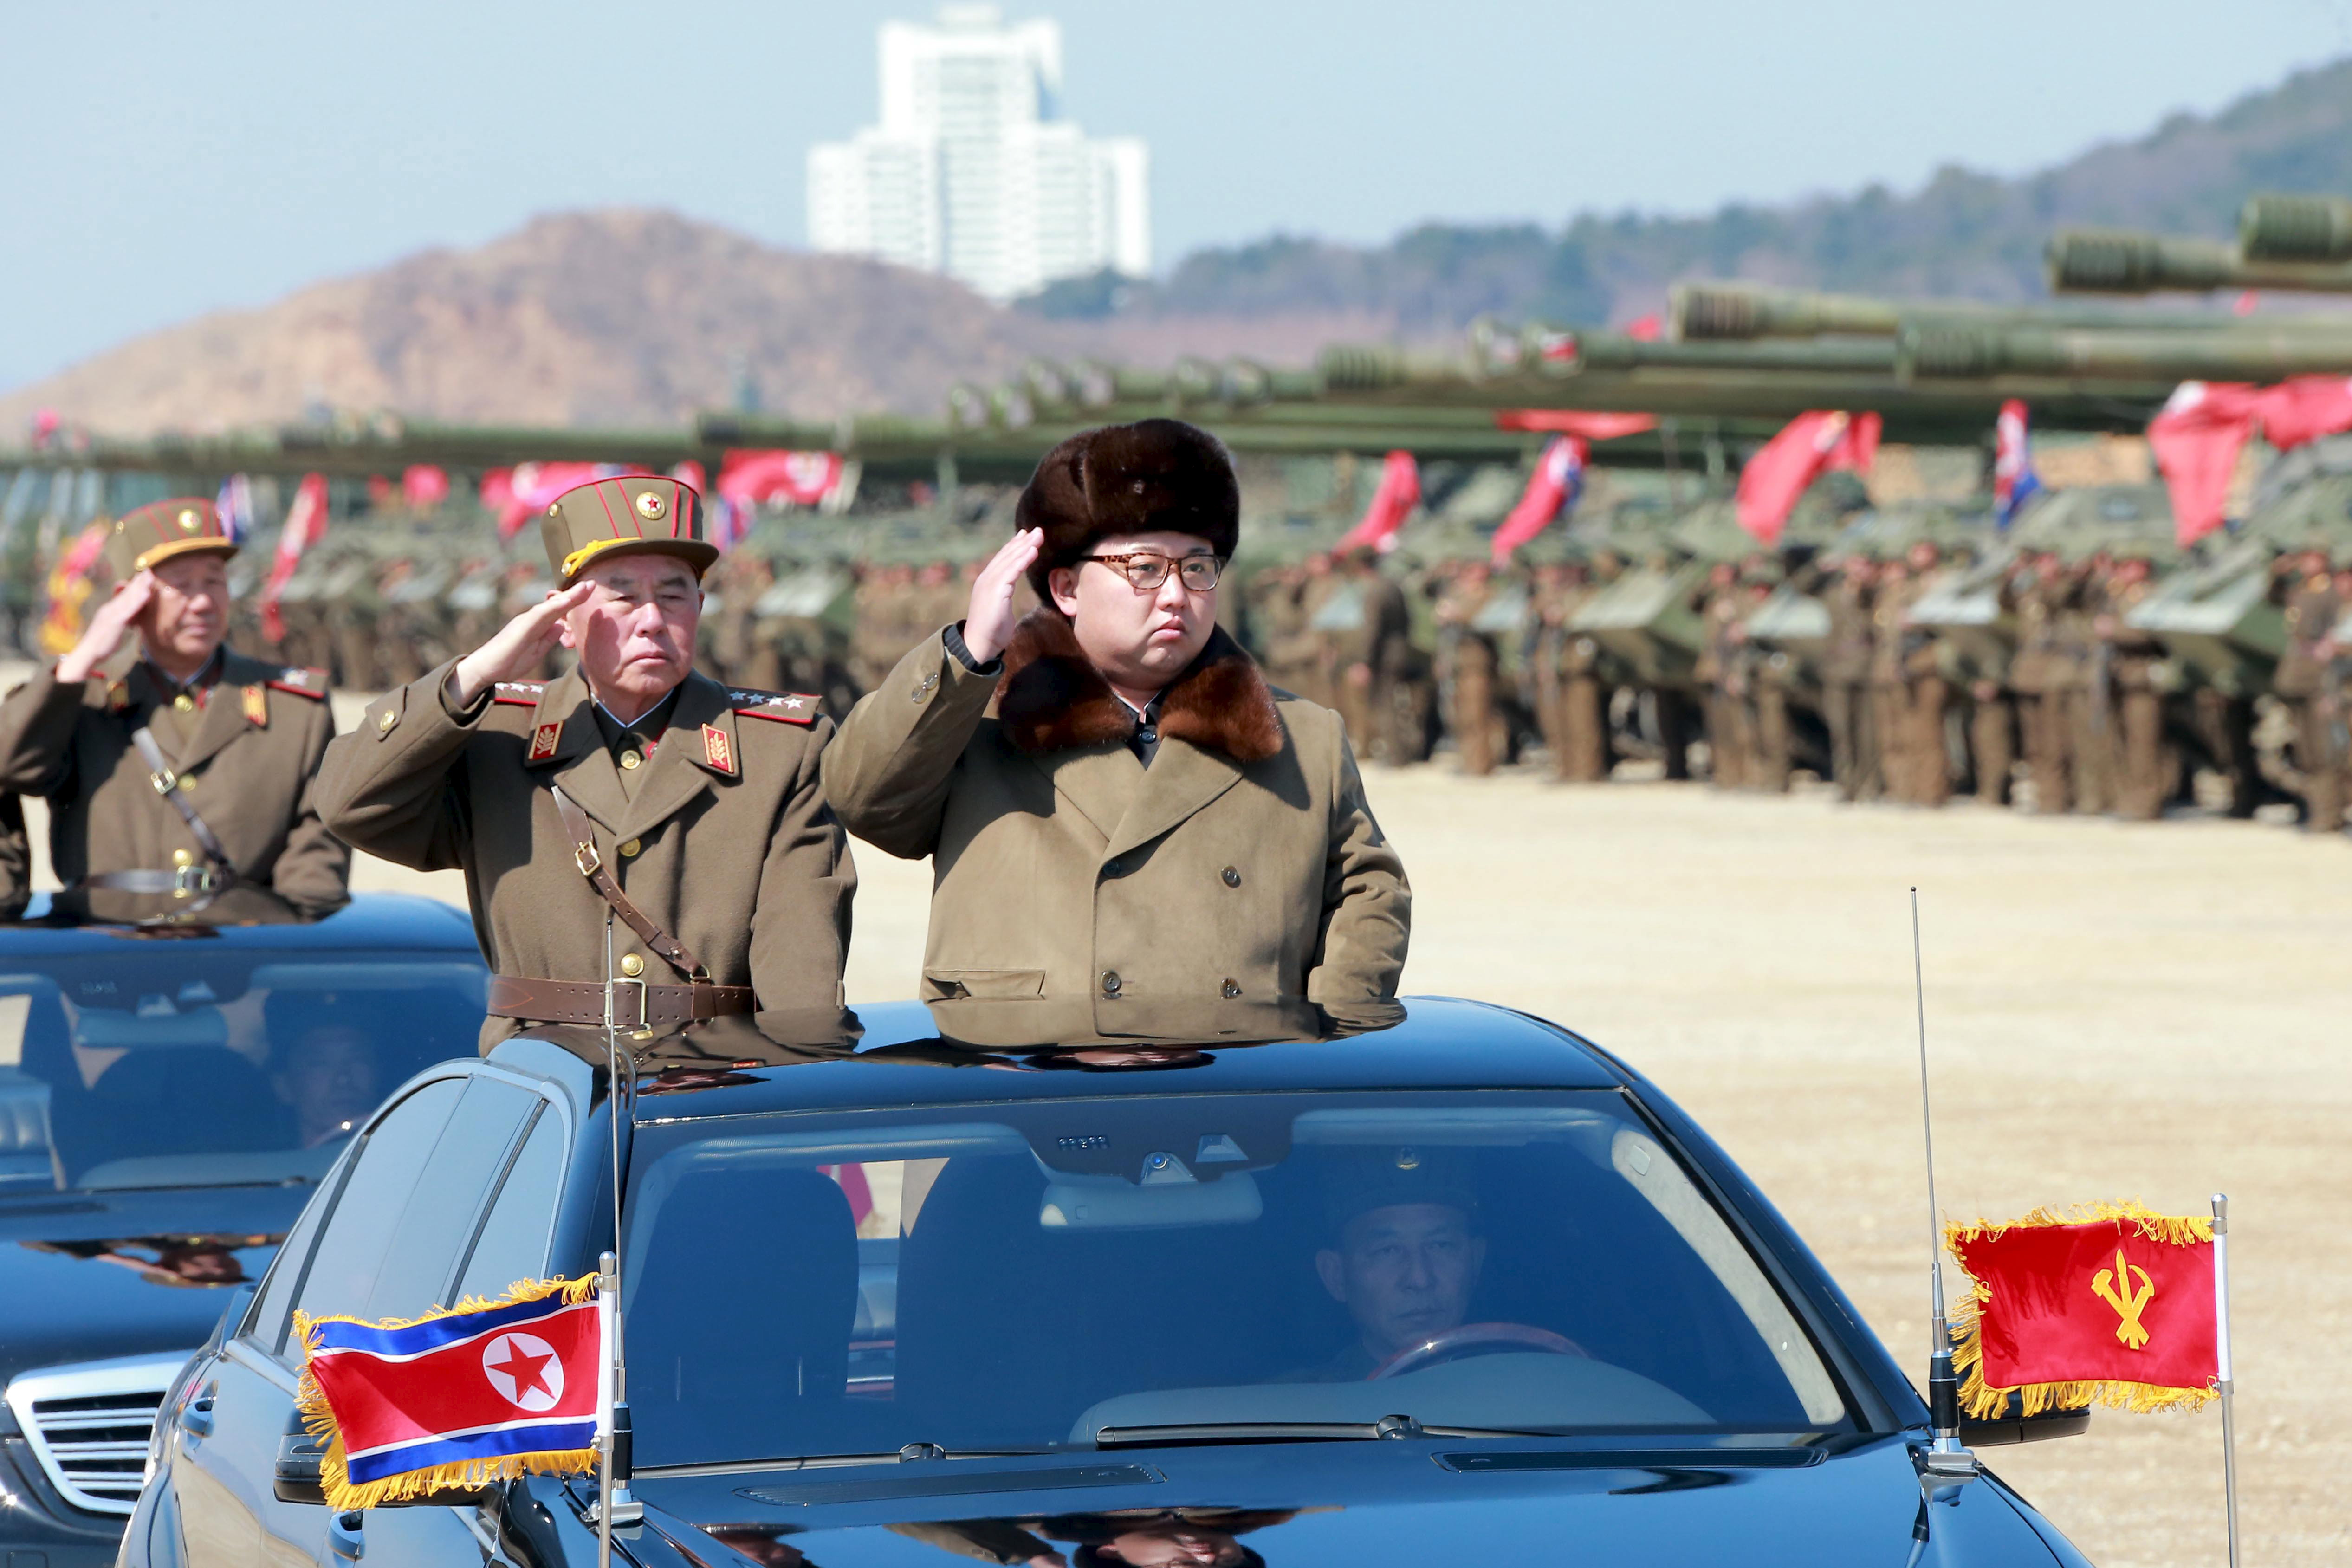 North Korean leader Kim Jong Un salutes as he arrives to inspect a military drill at an unknown location, in this undated photo released by North Korea's Korean Central News Agency (KCNA)